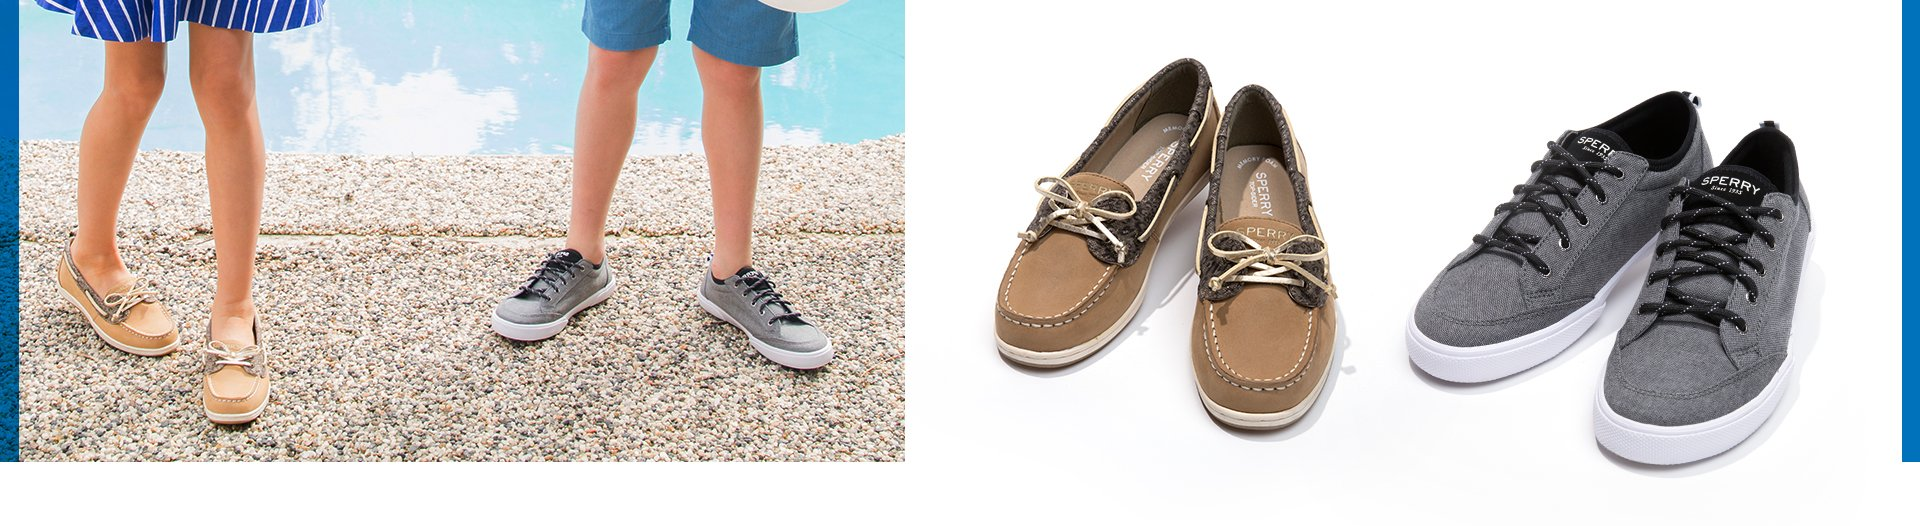 Shop Kids Sperry Boat Shoes